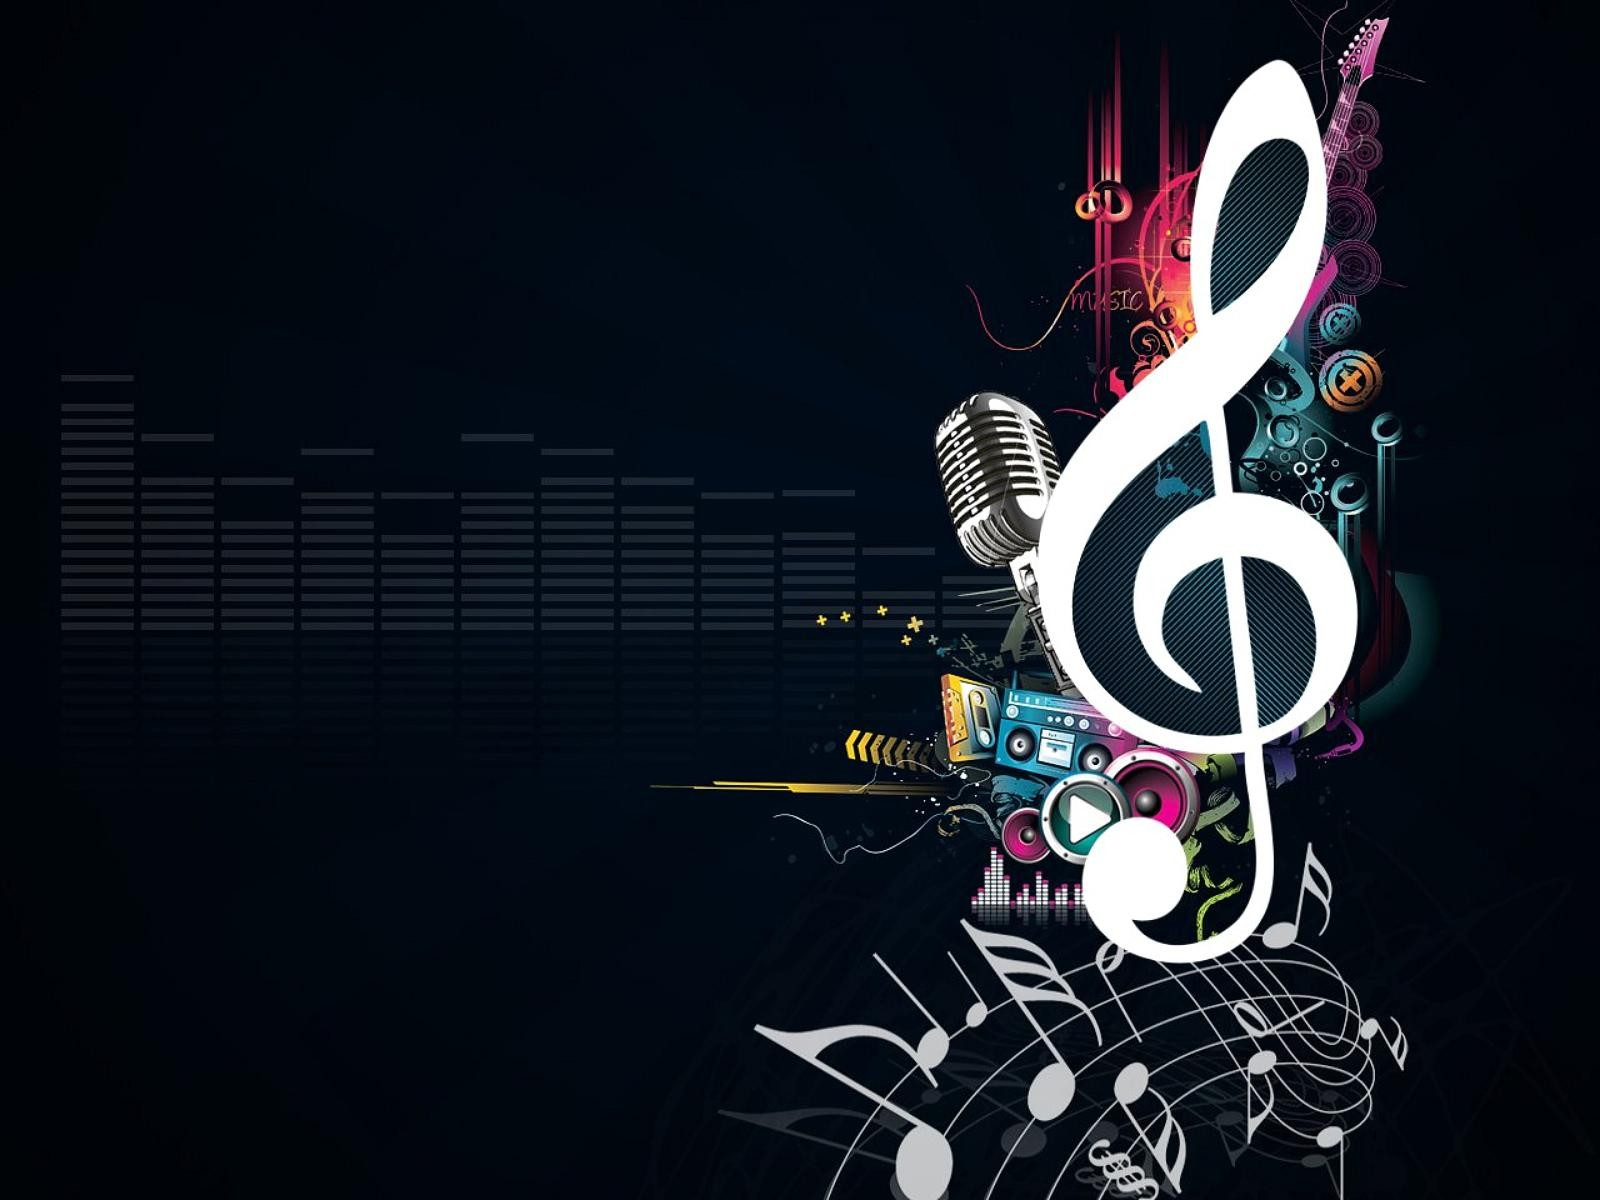 Music Wallpaper HD